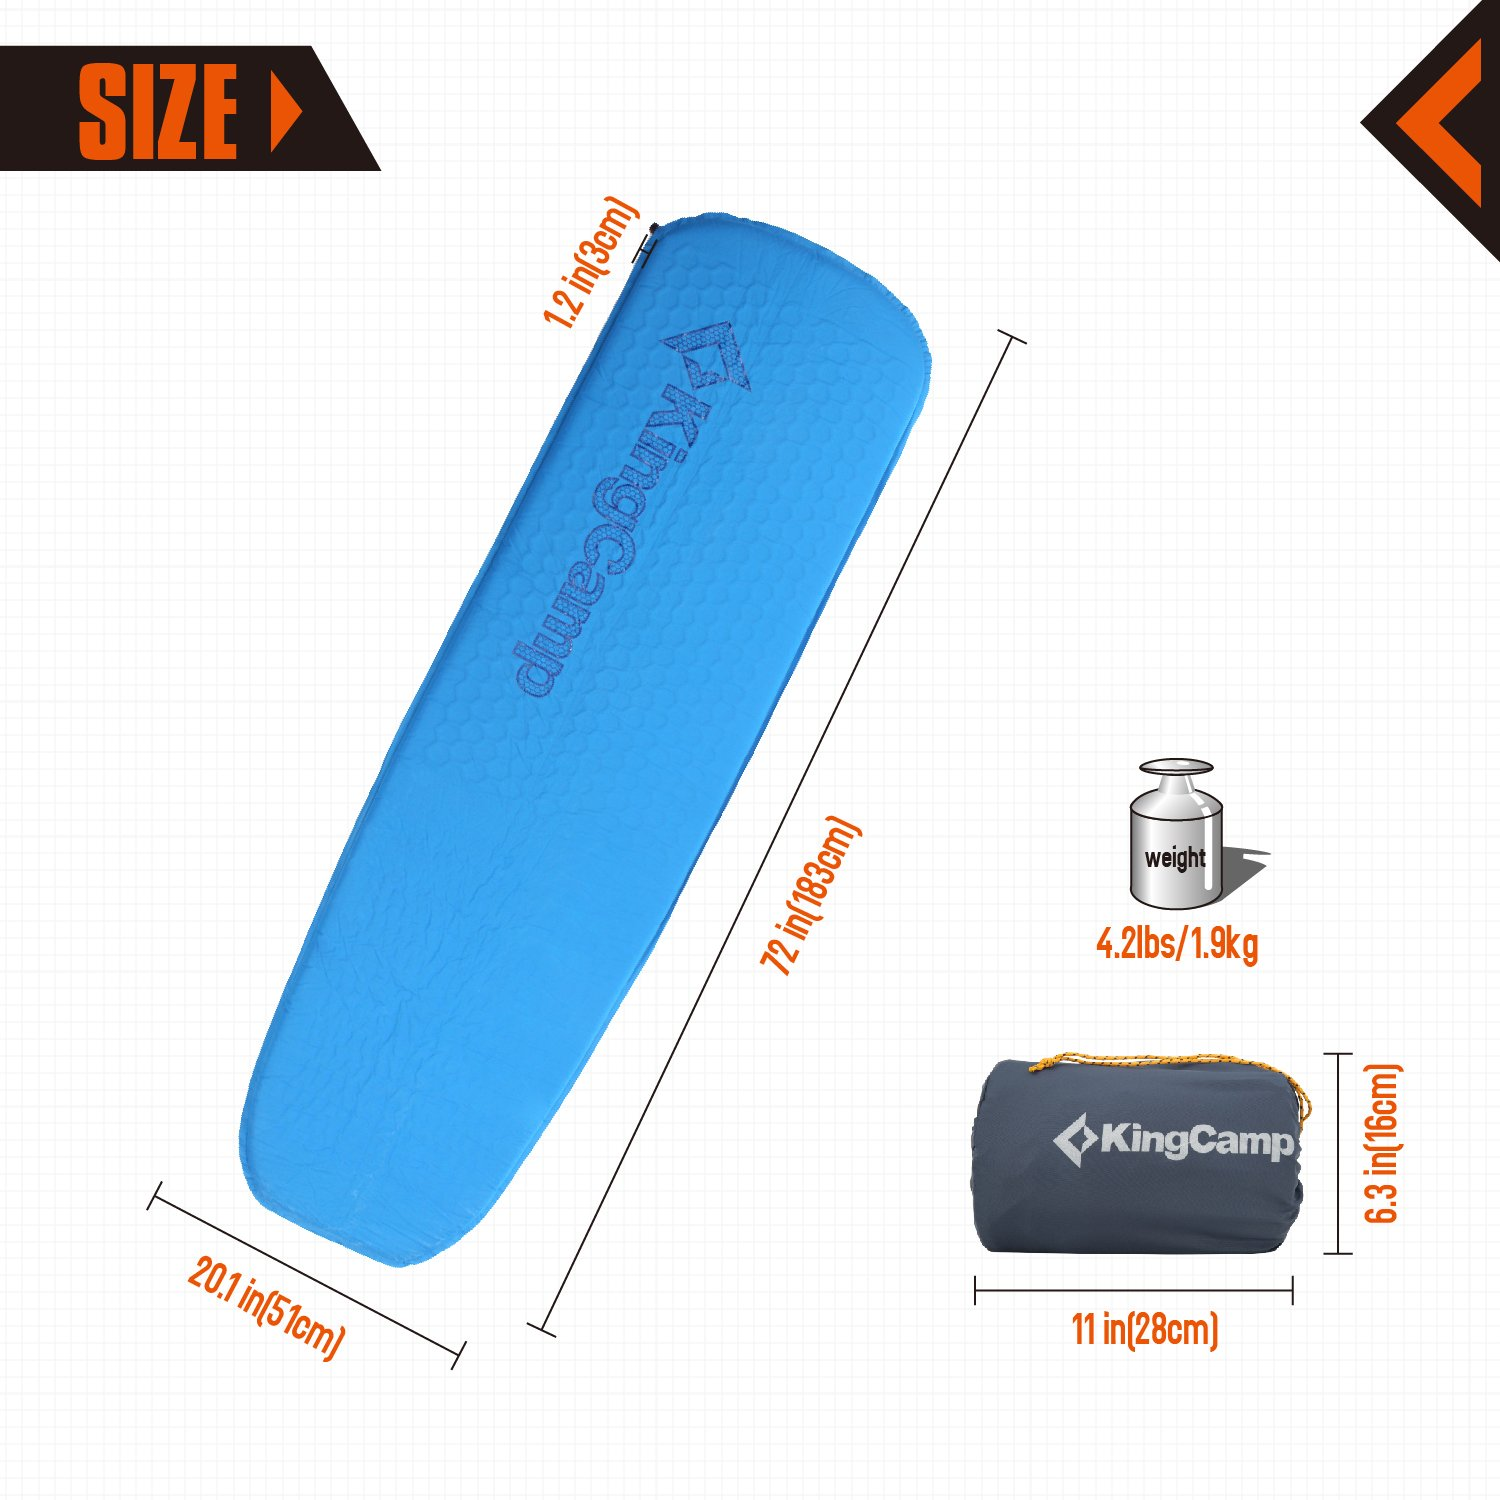 KingCamp Sleeping Pad Self Inflating Lighweight Foam Padding Compact Foldable Insulated Mat Damp-Proof Durable for Backpacking Camping Hiking